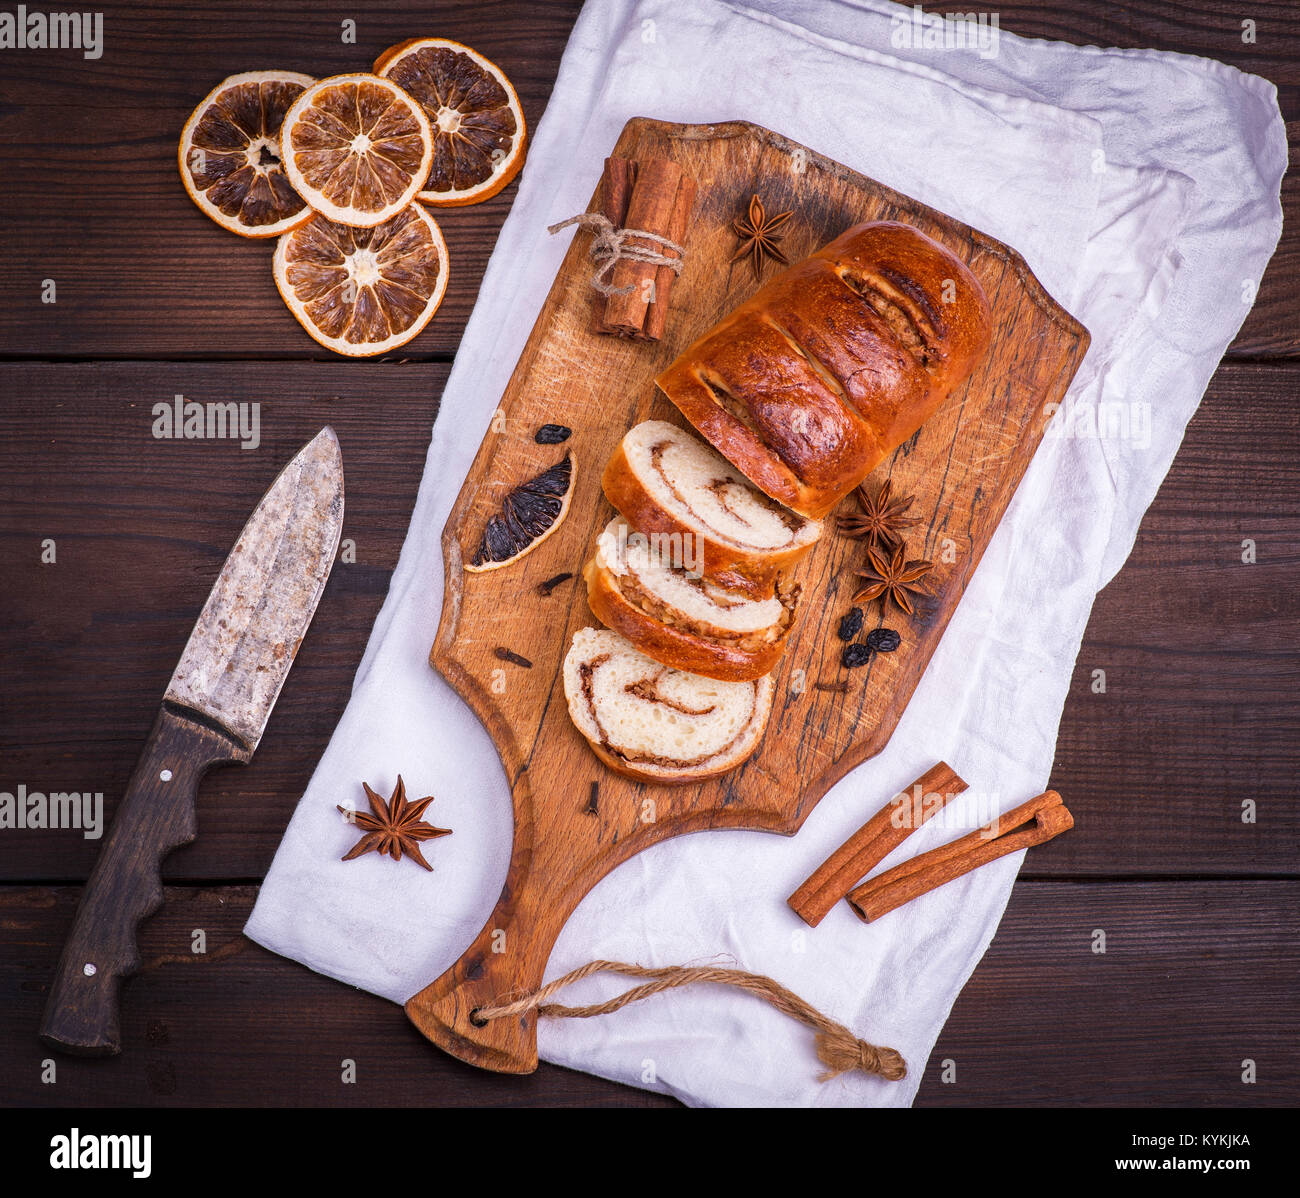 baked roll with cinnamon and nuts on a wooden cutting board, next knife, top view - Stock Image